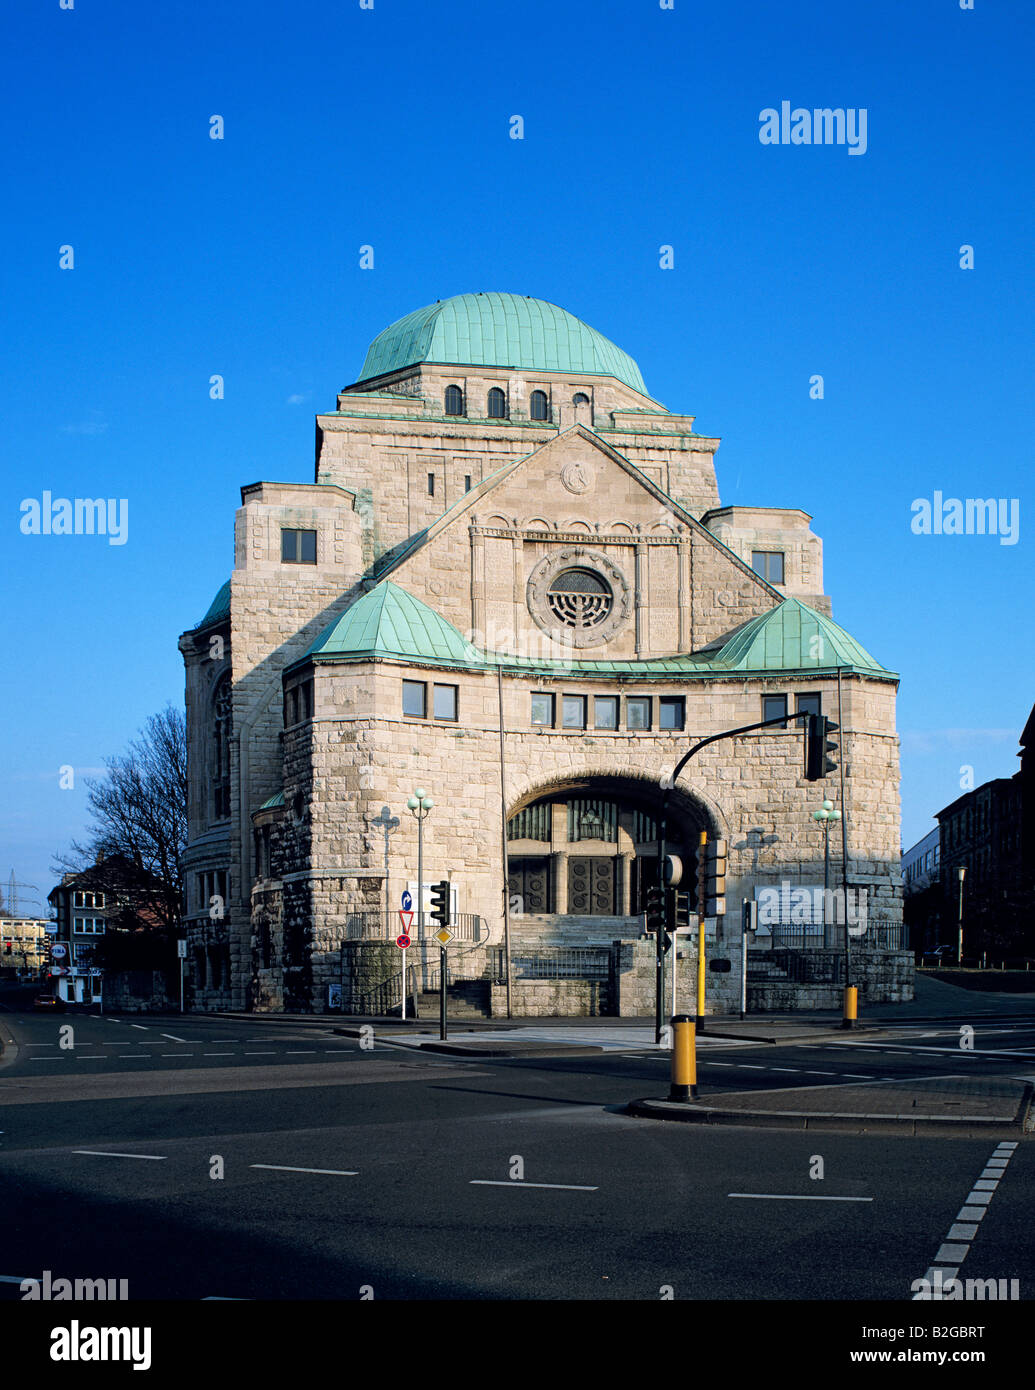 alte synagoge stock photos alte synagoge stock images alamy